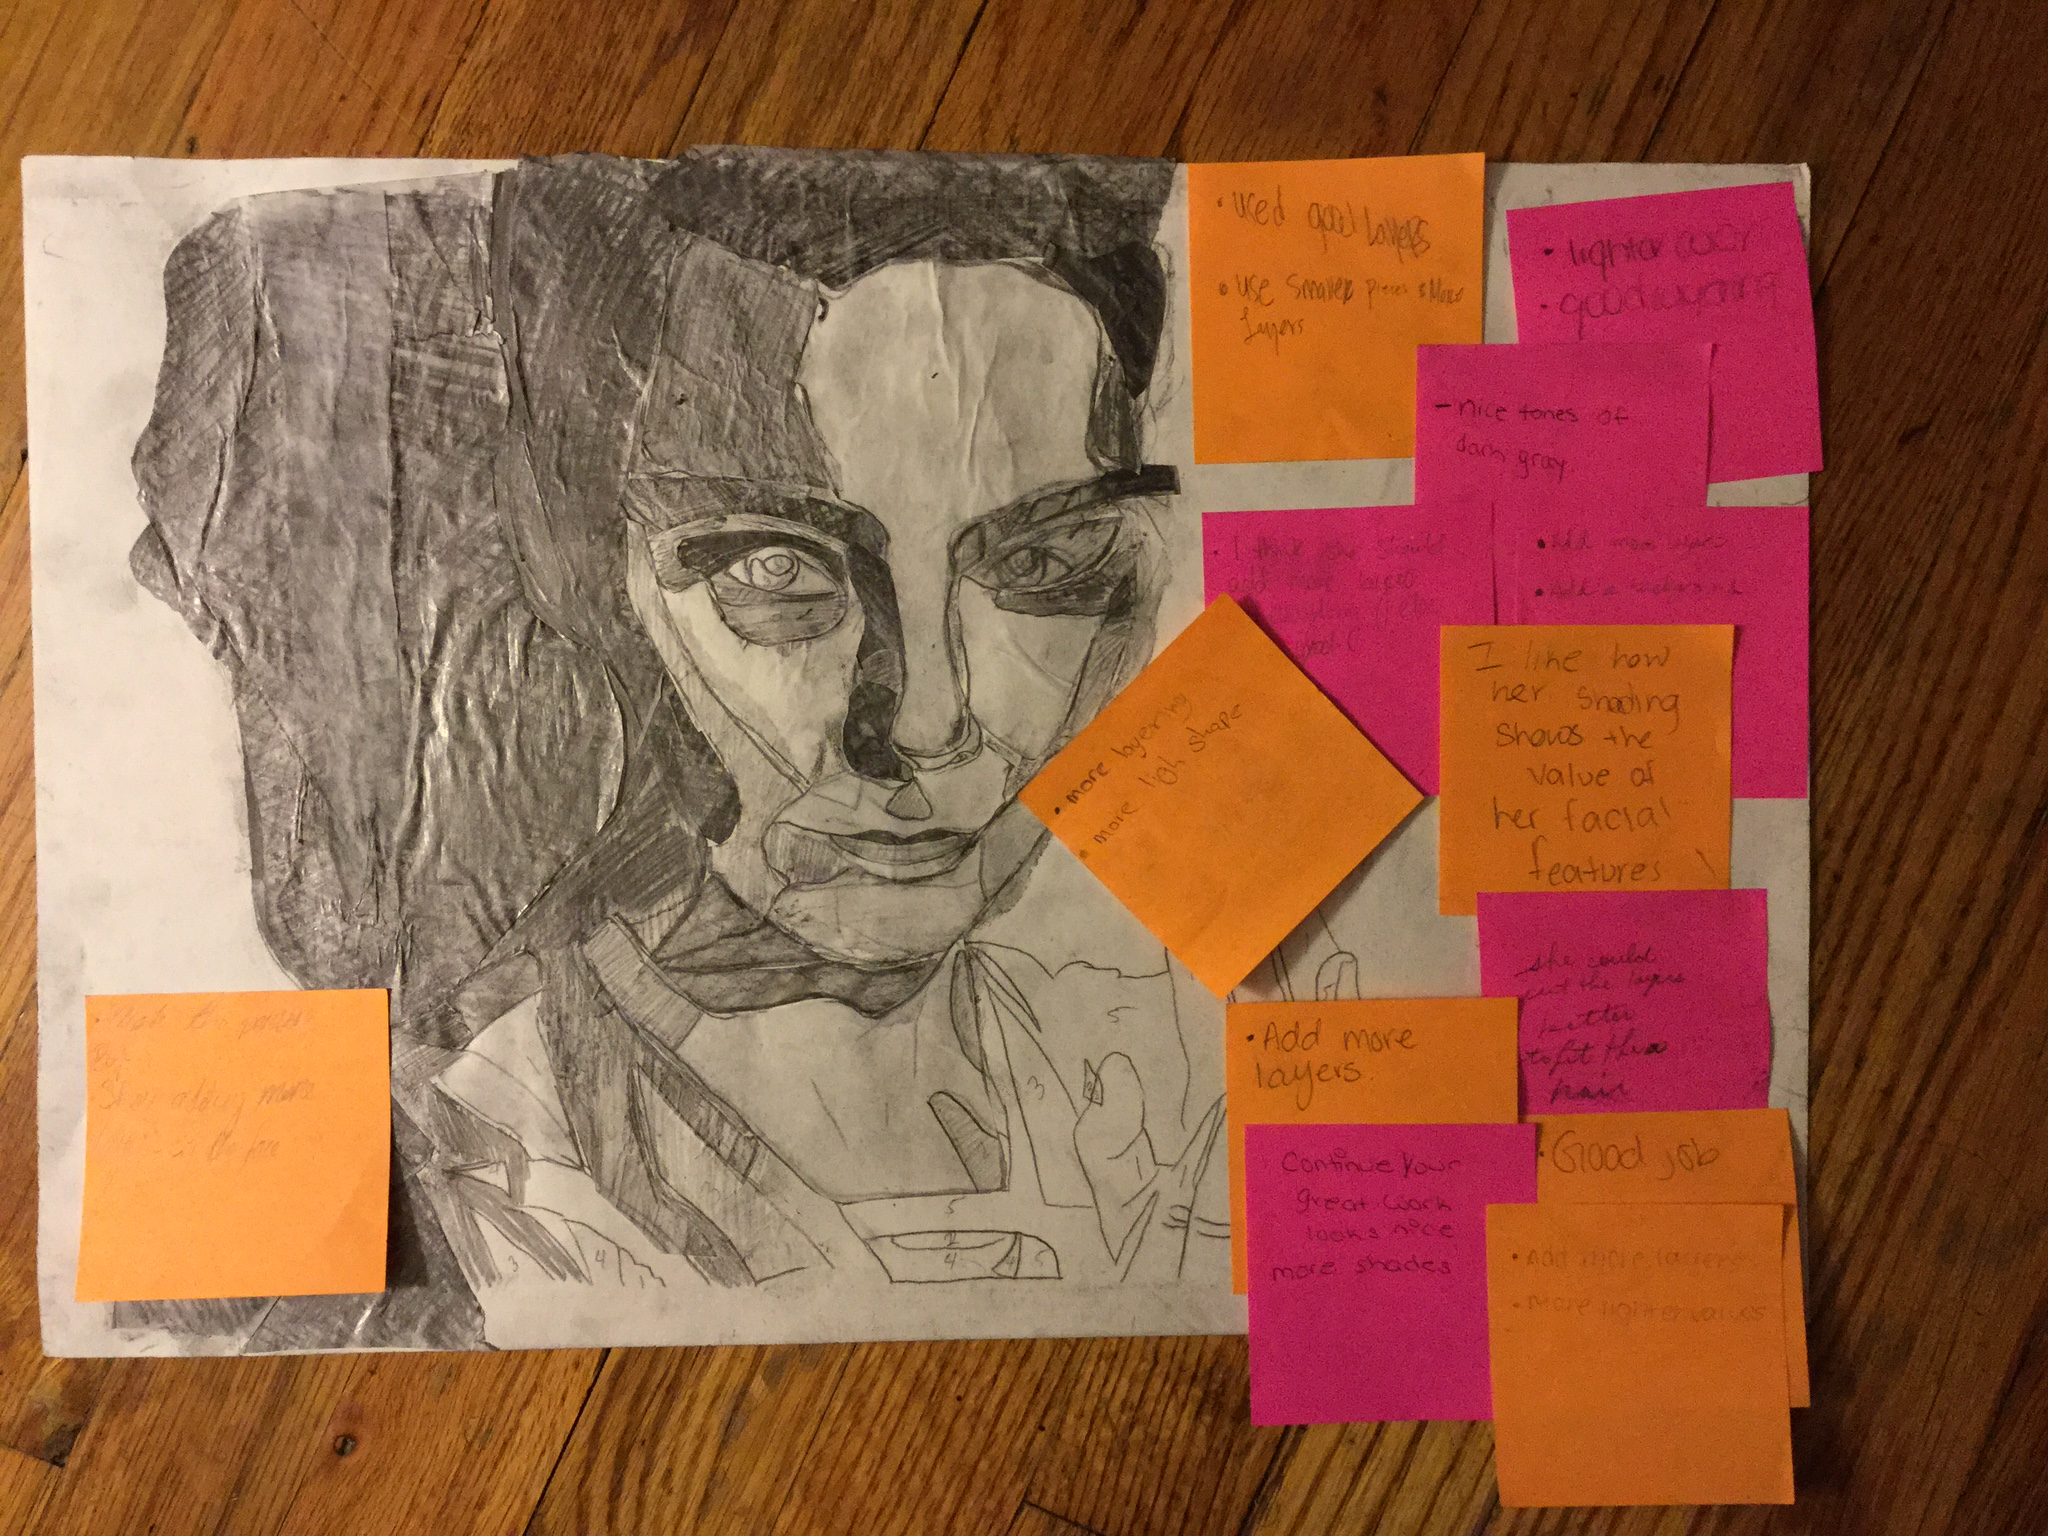 Feedback on post-it paper